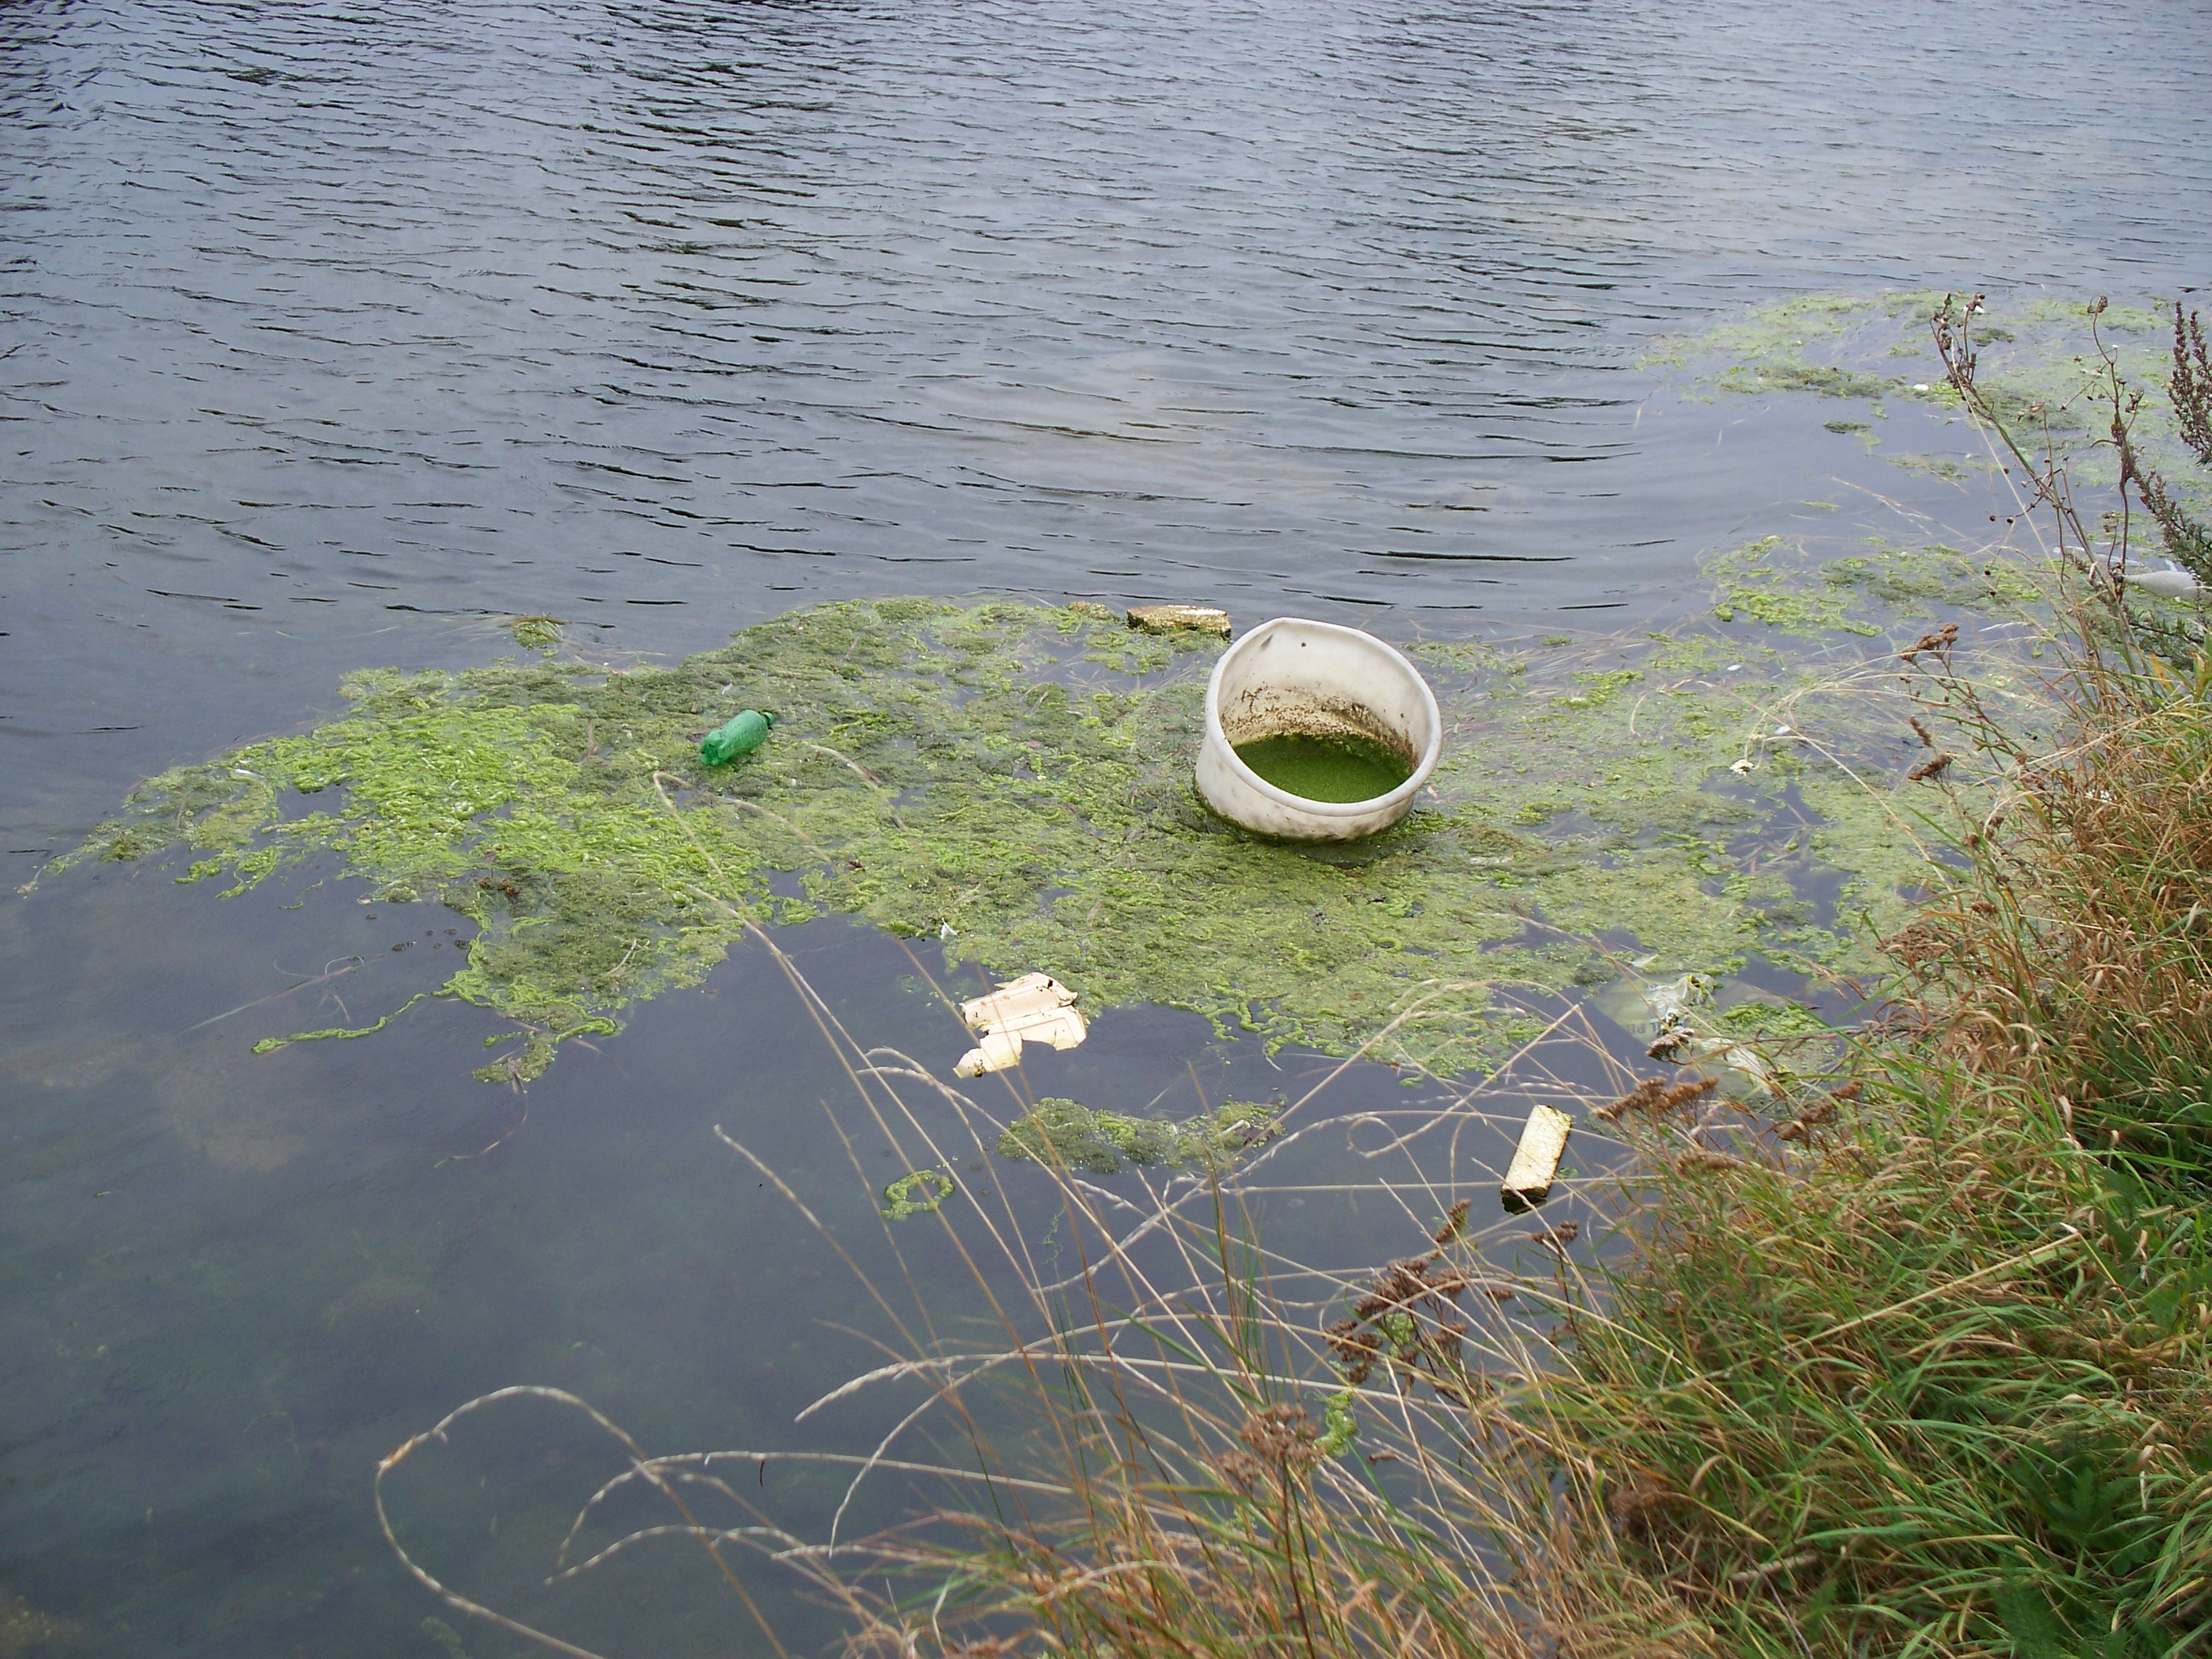 http://upload.wikimedia.org/wikipedia/commons/b/b9/Rubbish_in_Lea.jpg